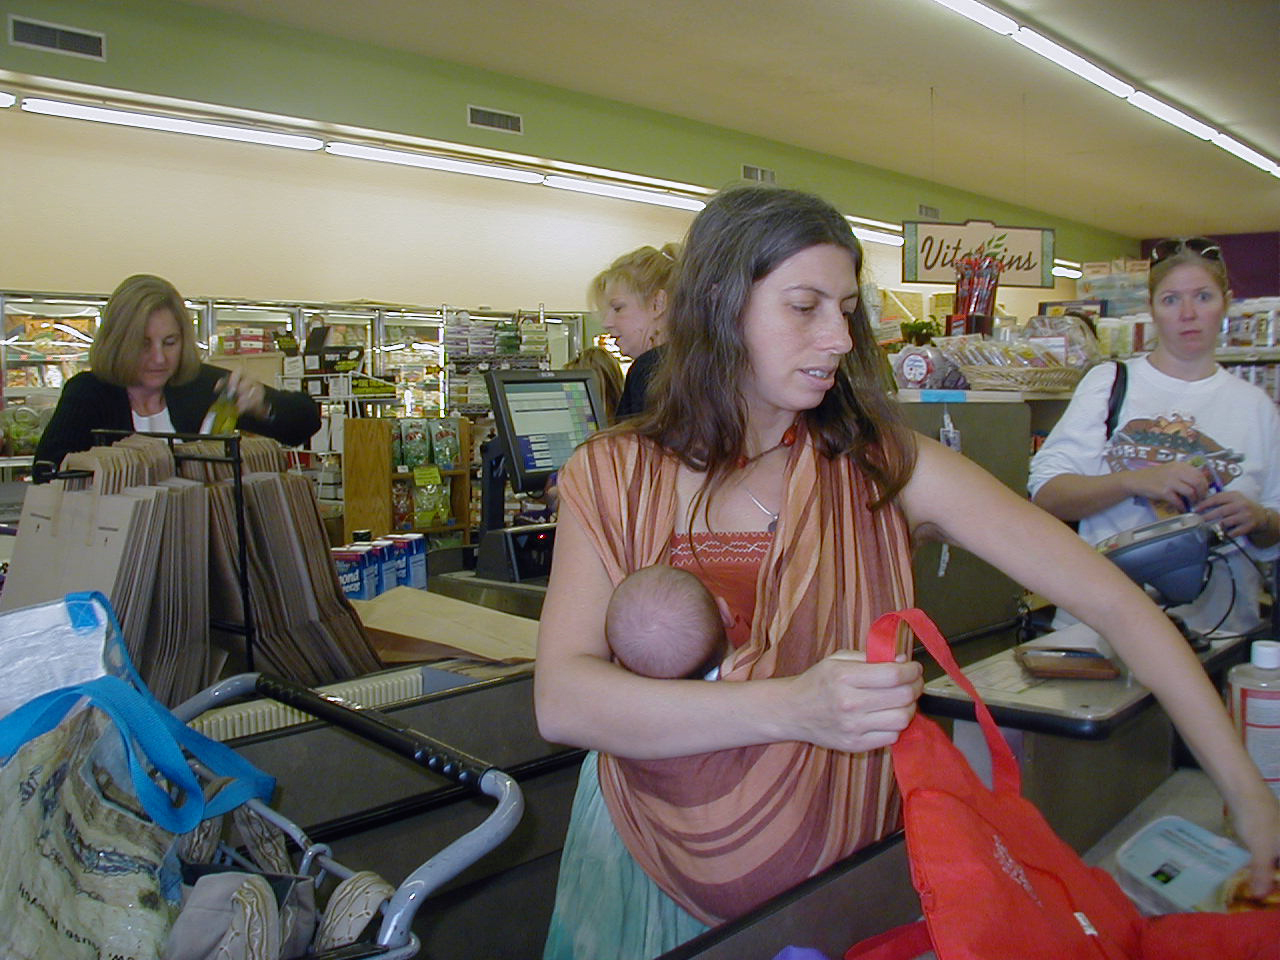 Nursing in th FCC While Bagging Groceries